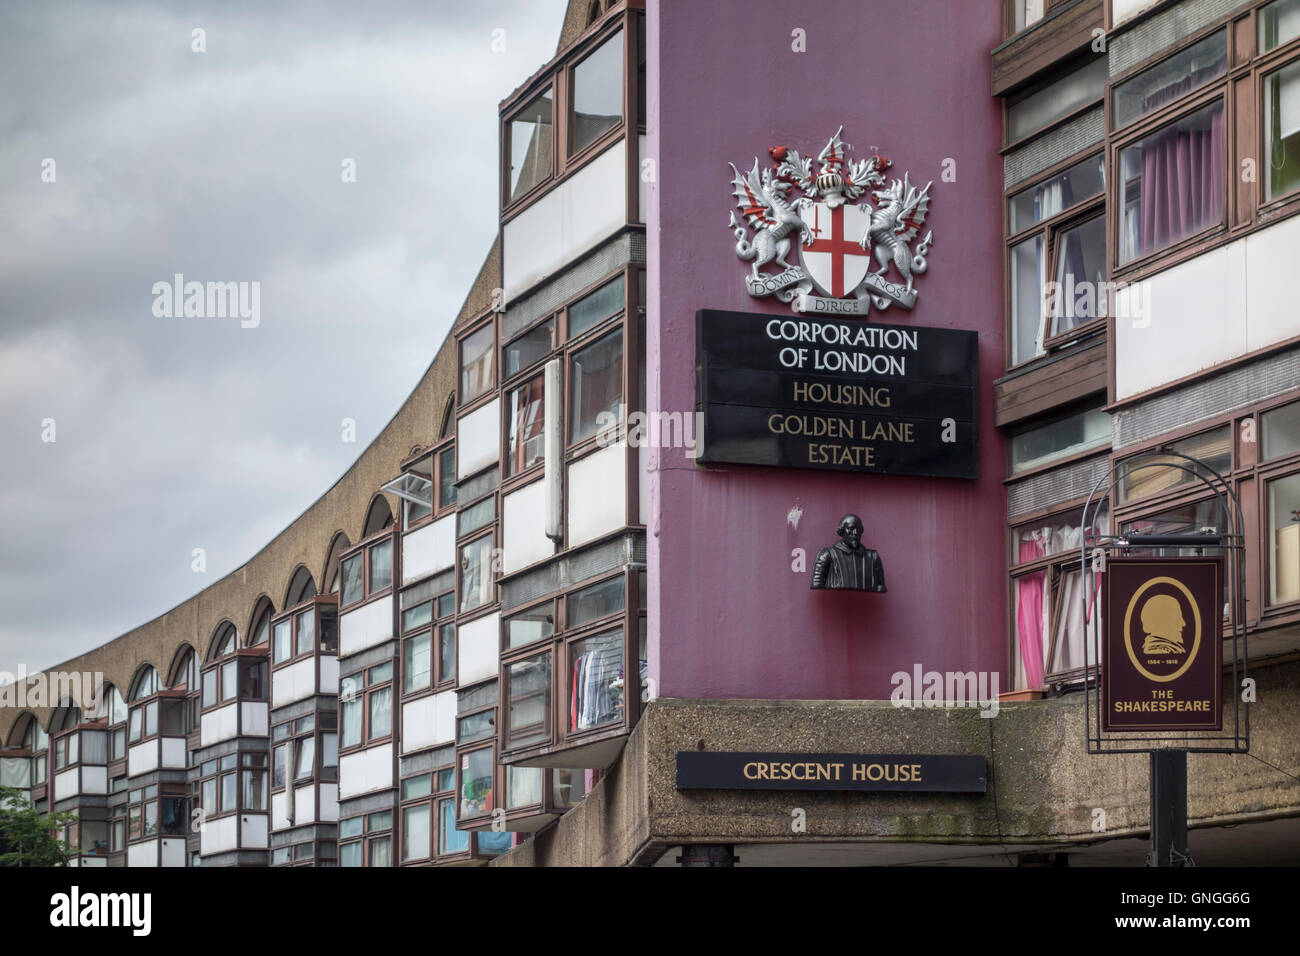 Crescent House, Golden Lane Estate, Corporation of London, UK - Stock Image